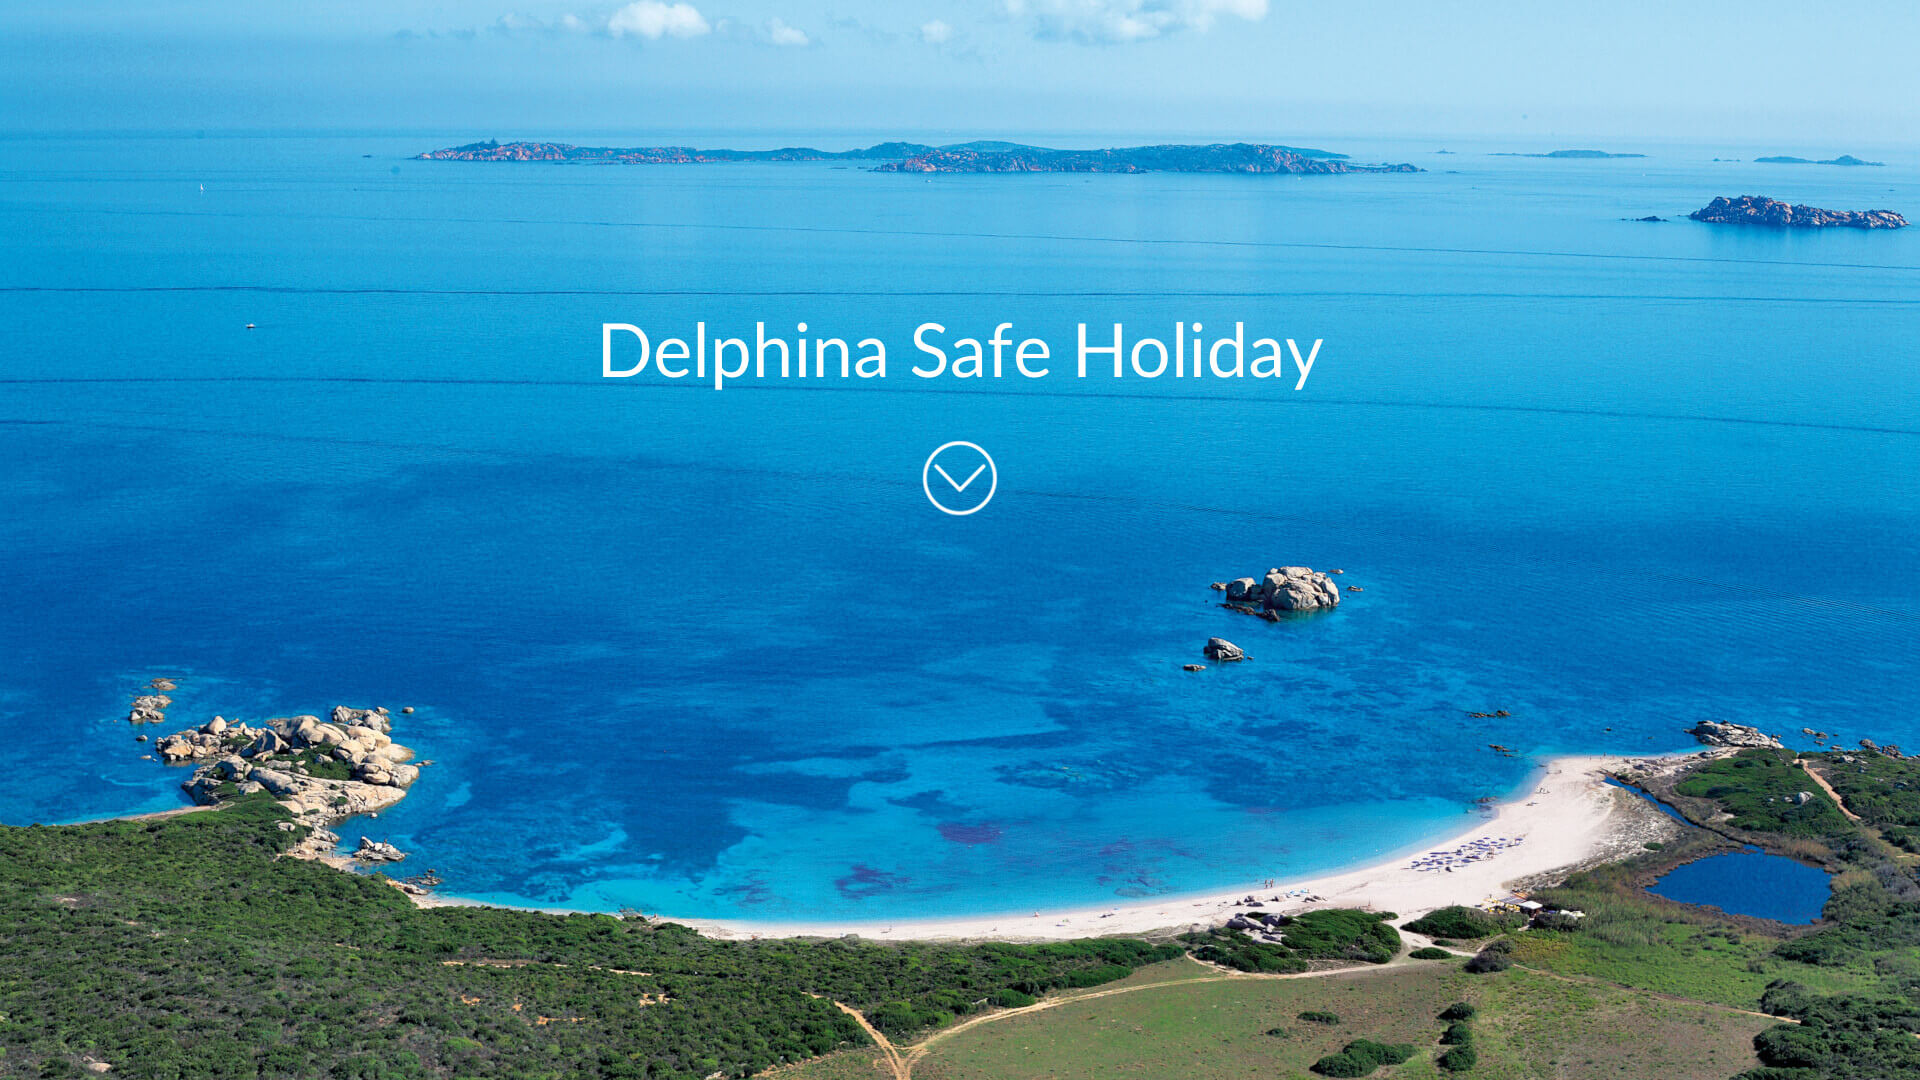 delphina-safe-holiday